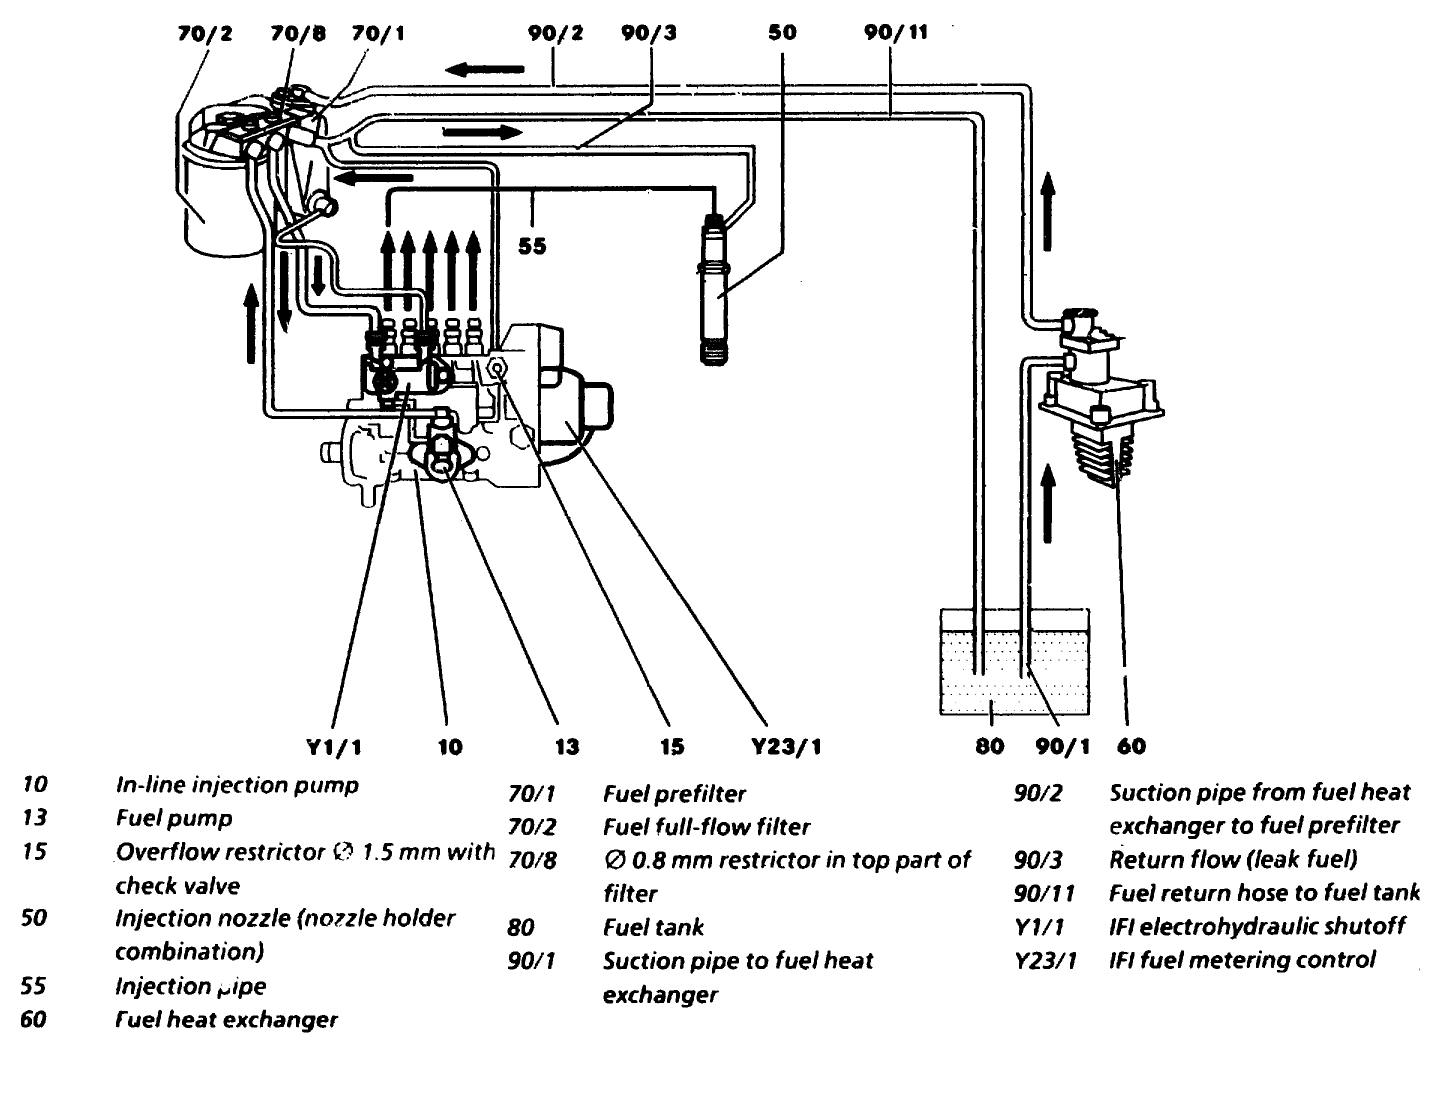 Mercedes Vito Fuel Filter Diagram Electrical Wiring 2002 Ford Windstar Location 1997 Expedition